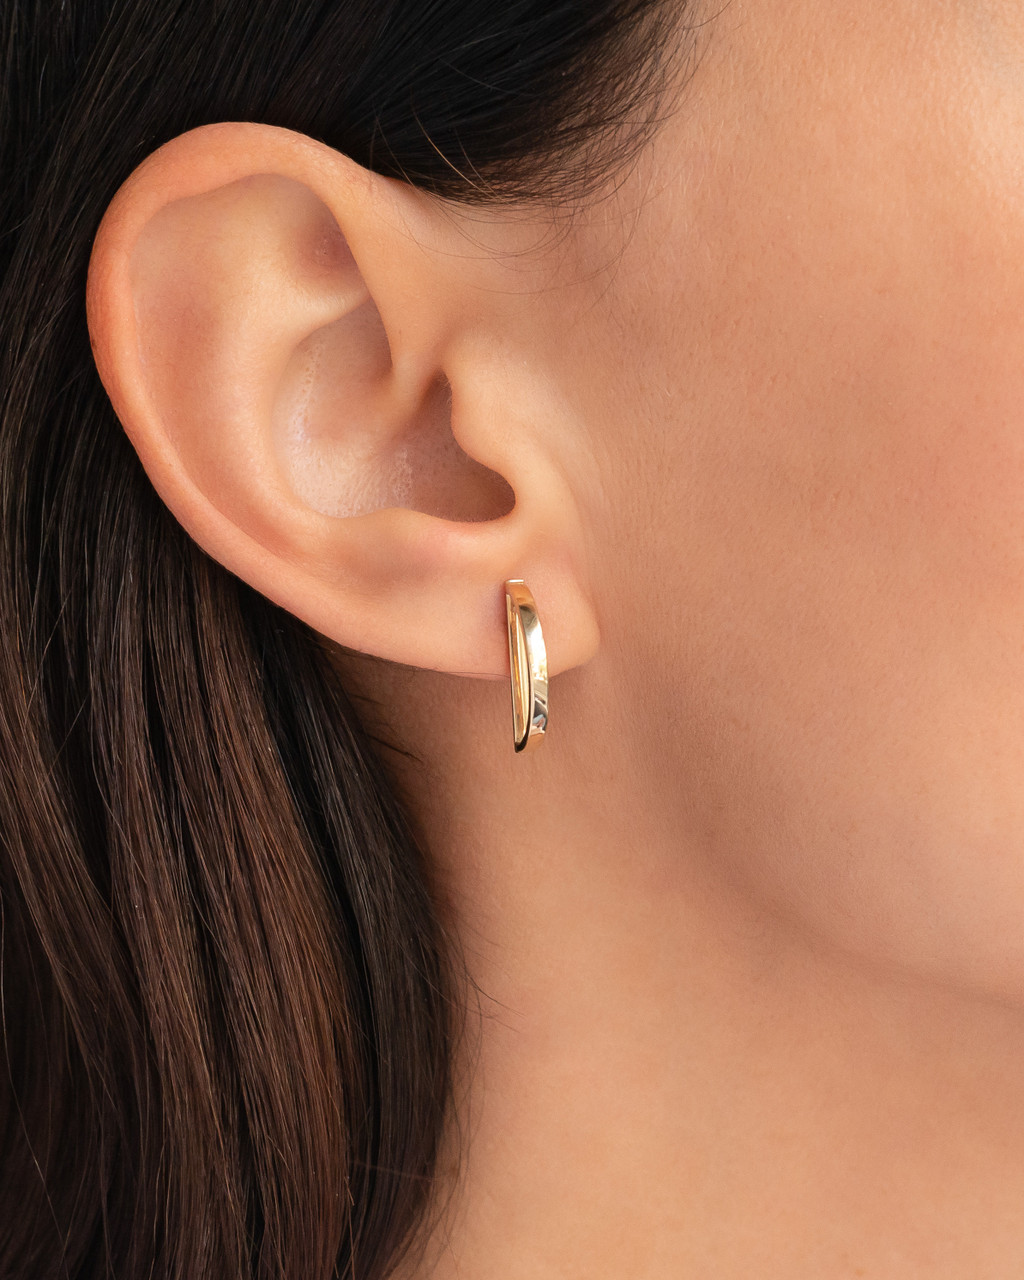 14k Gold Half Circle Stud Earrings